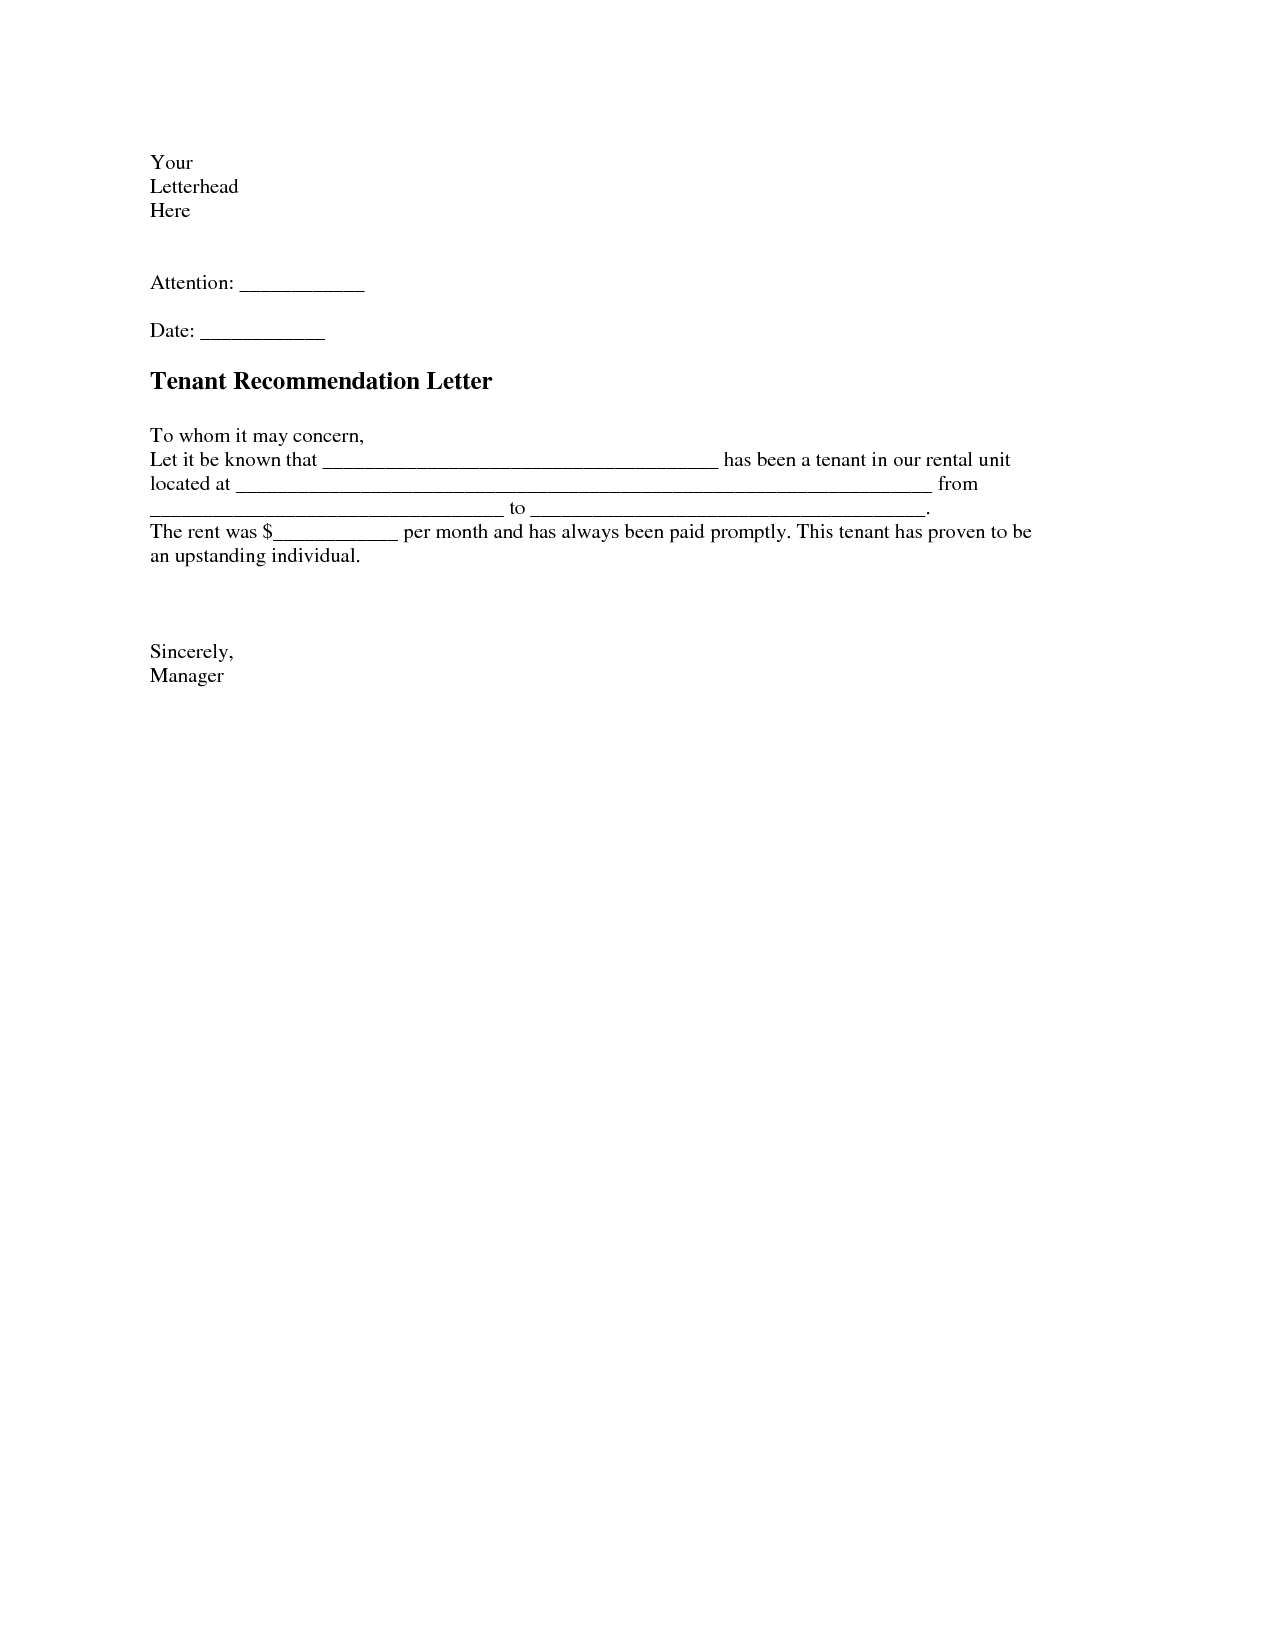 Tenant Recommendation Letter Template - Tenant Re Mendation Letter A Tenant Re Mendation Letter is